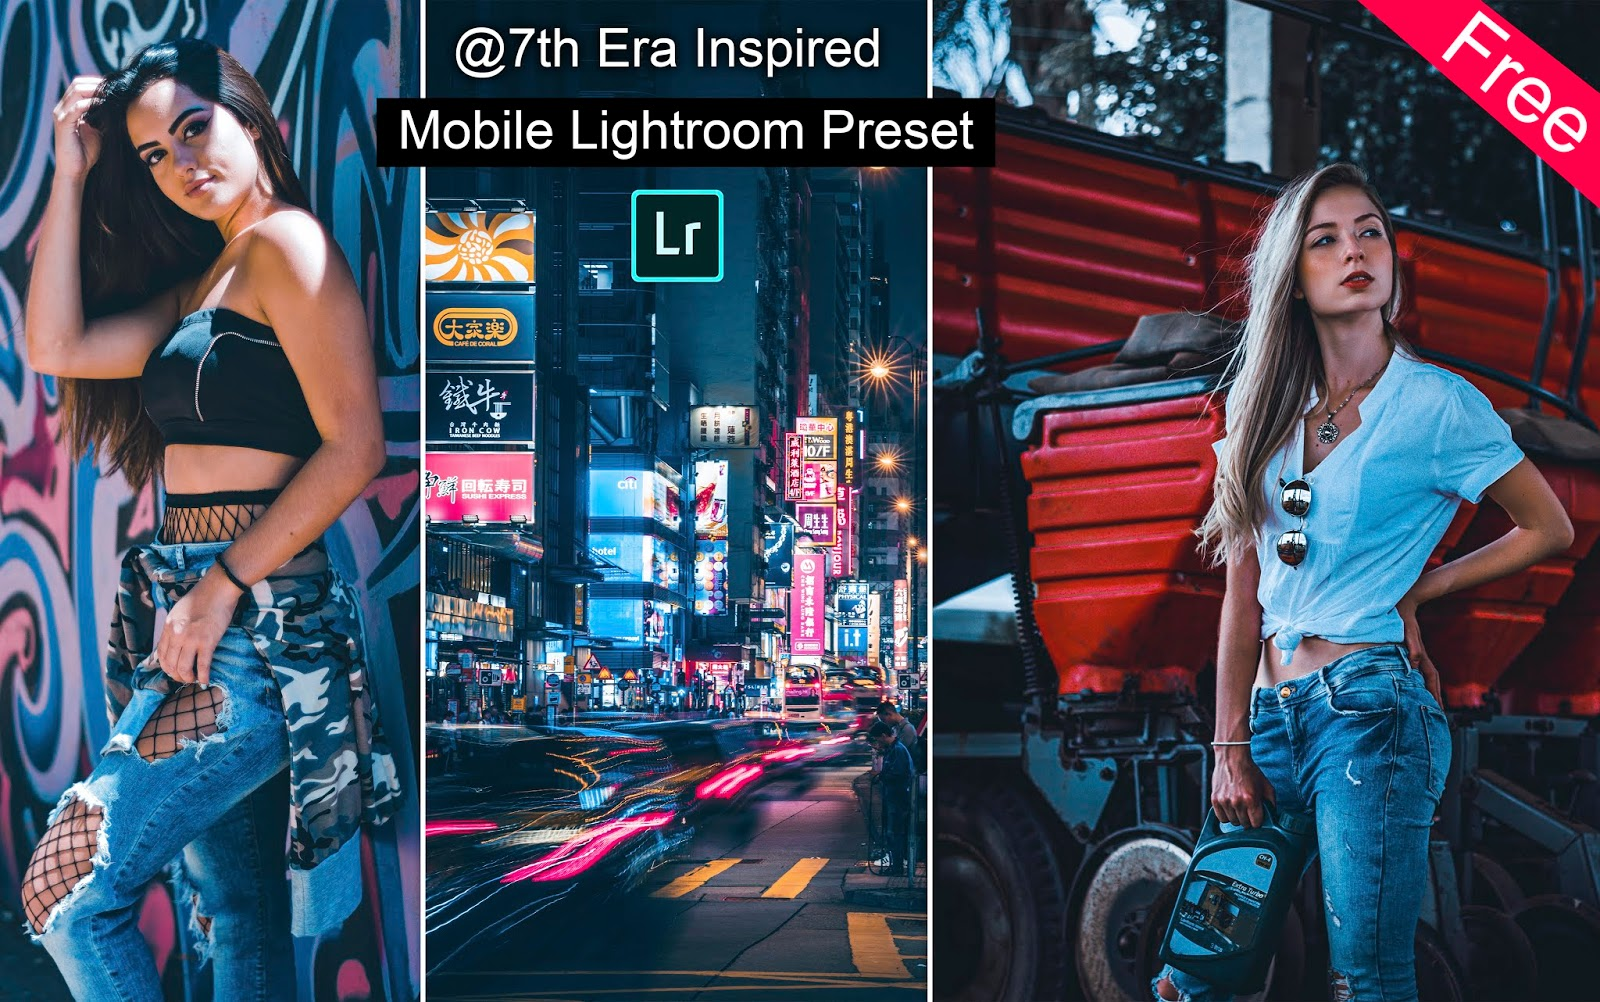 Download 7th Era Inspired Mobile Lightroom Preset for Free   How to Edit Photos Like 7th Era in Mobile Lightroom